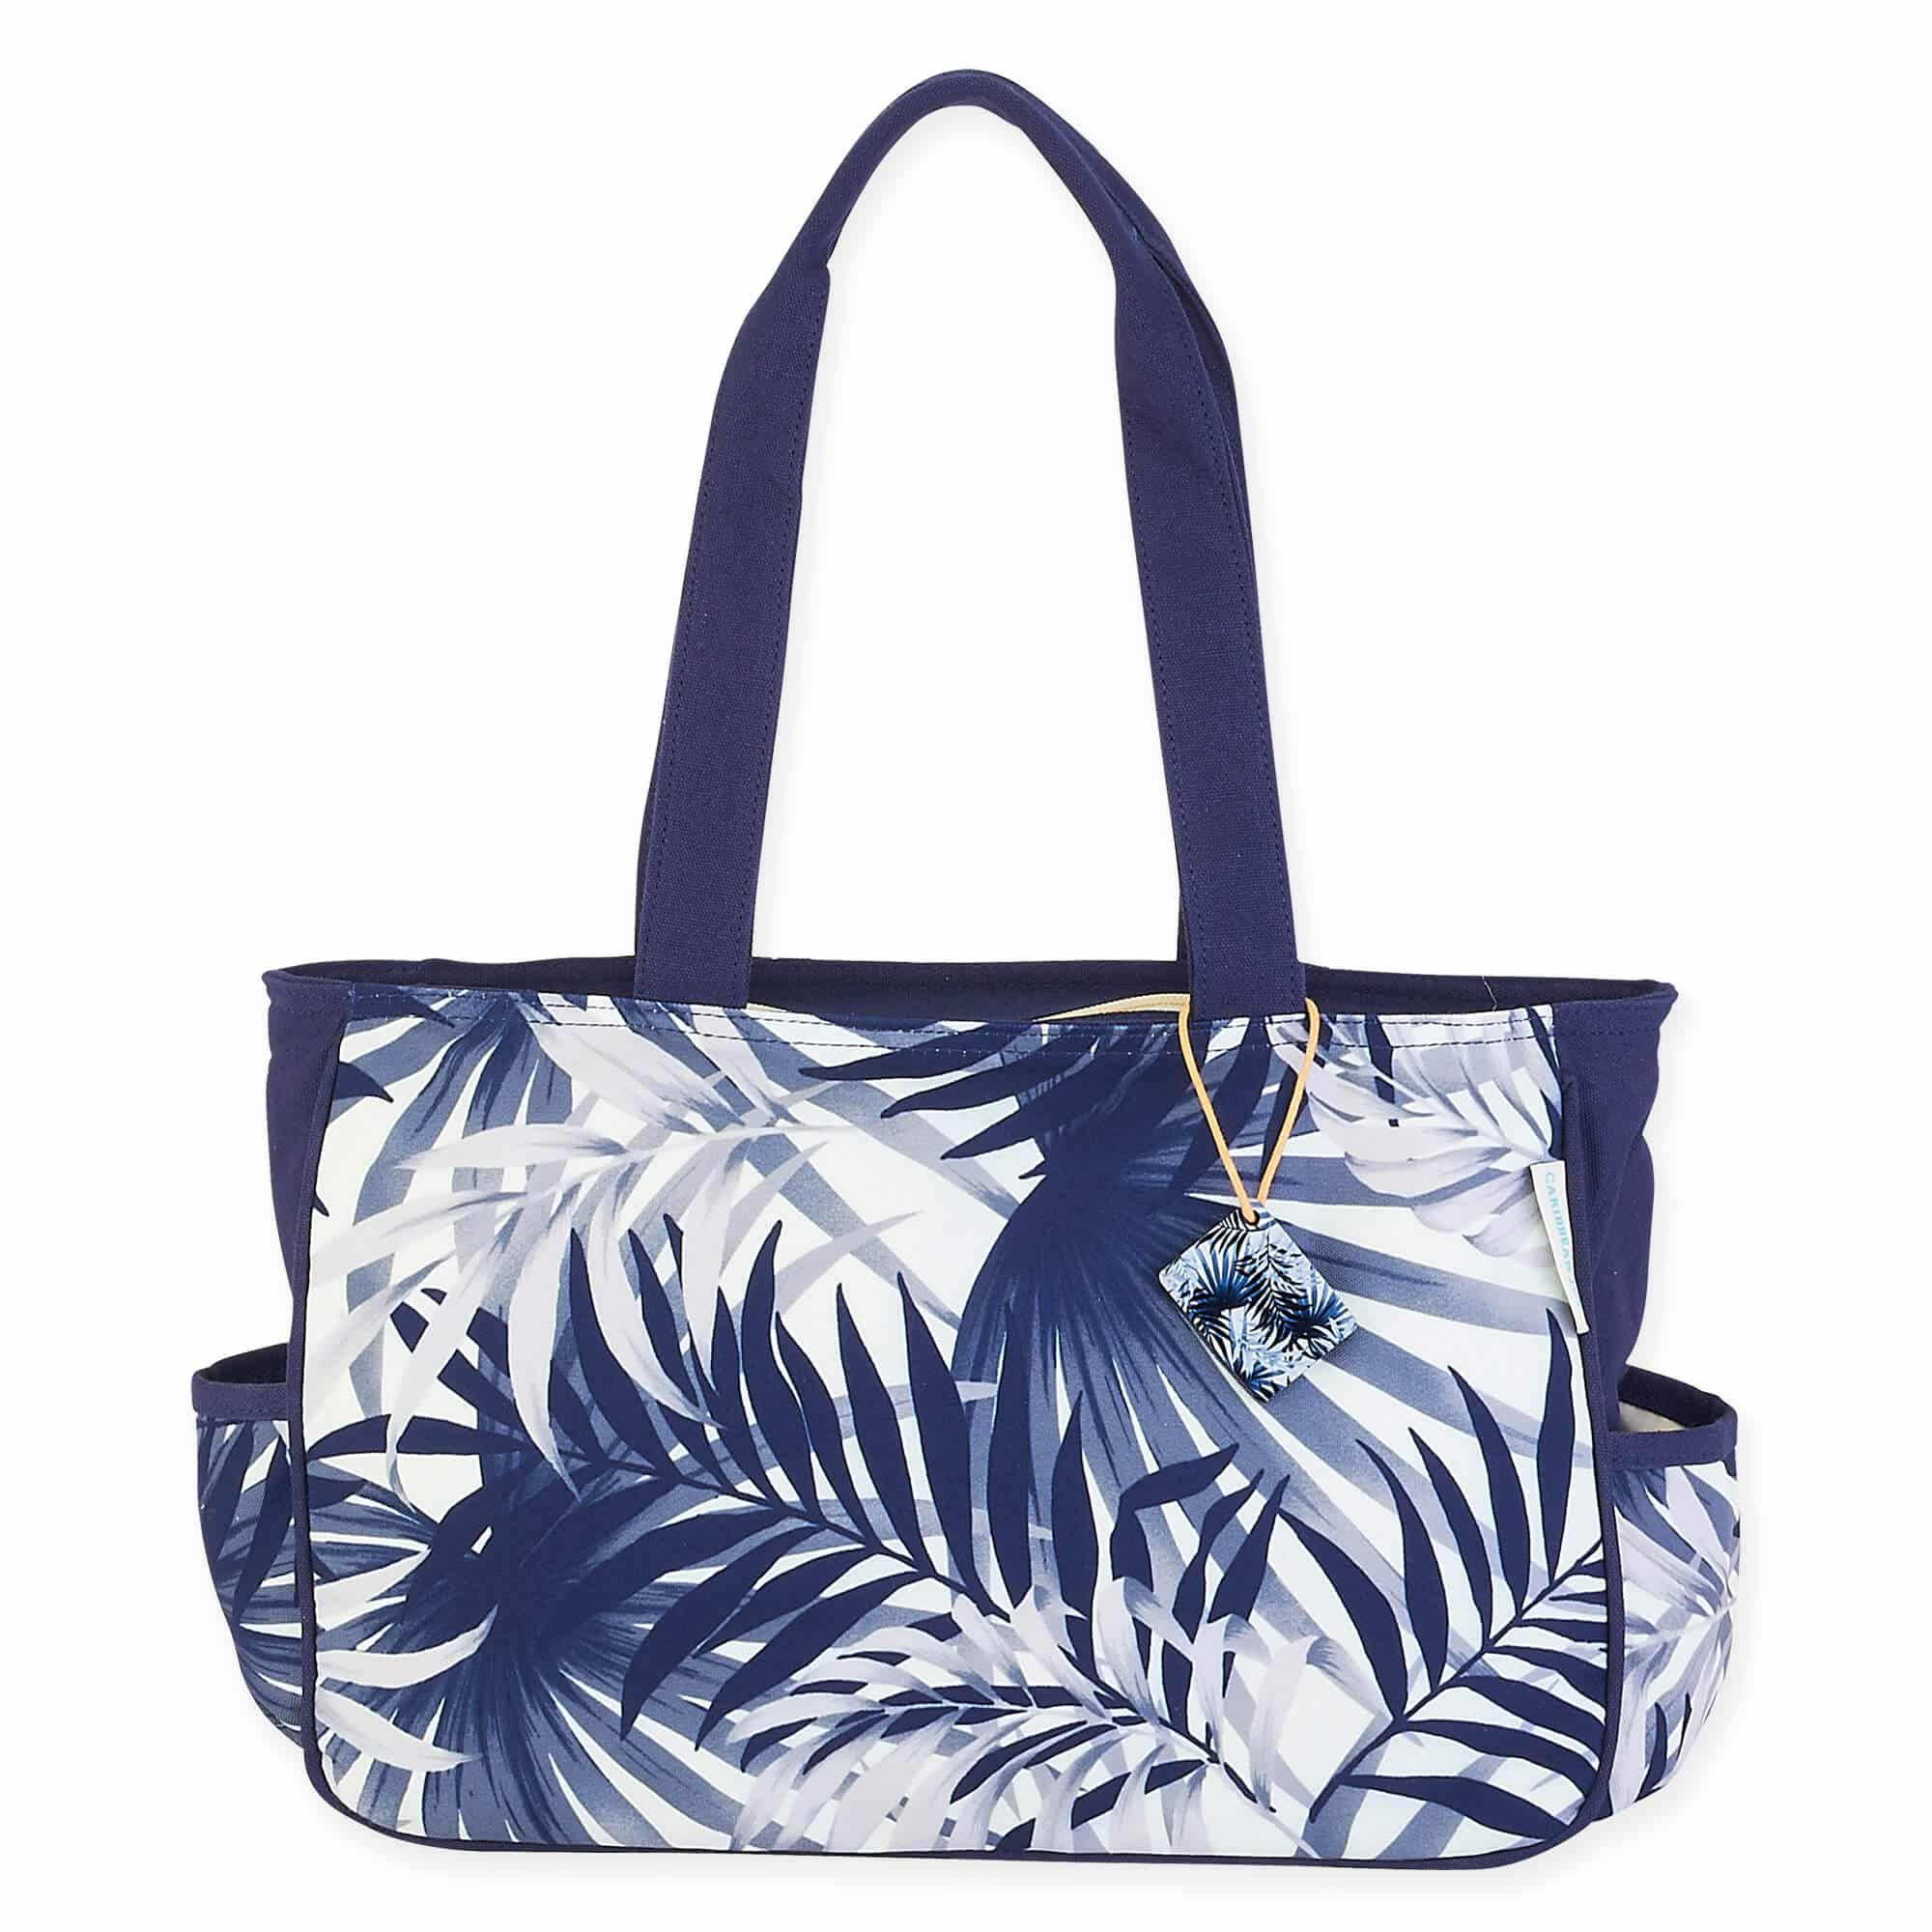 Fern Cascade E/W Medium Tote by Caribbean Joe